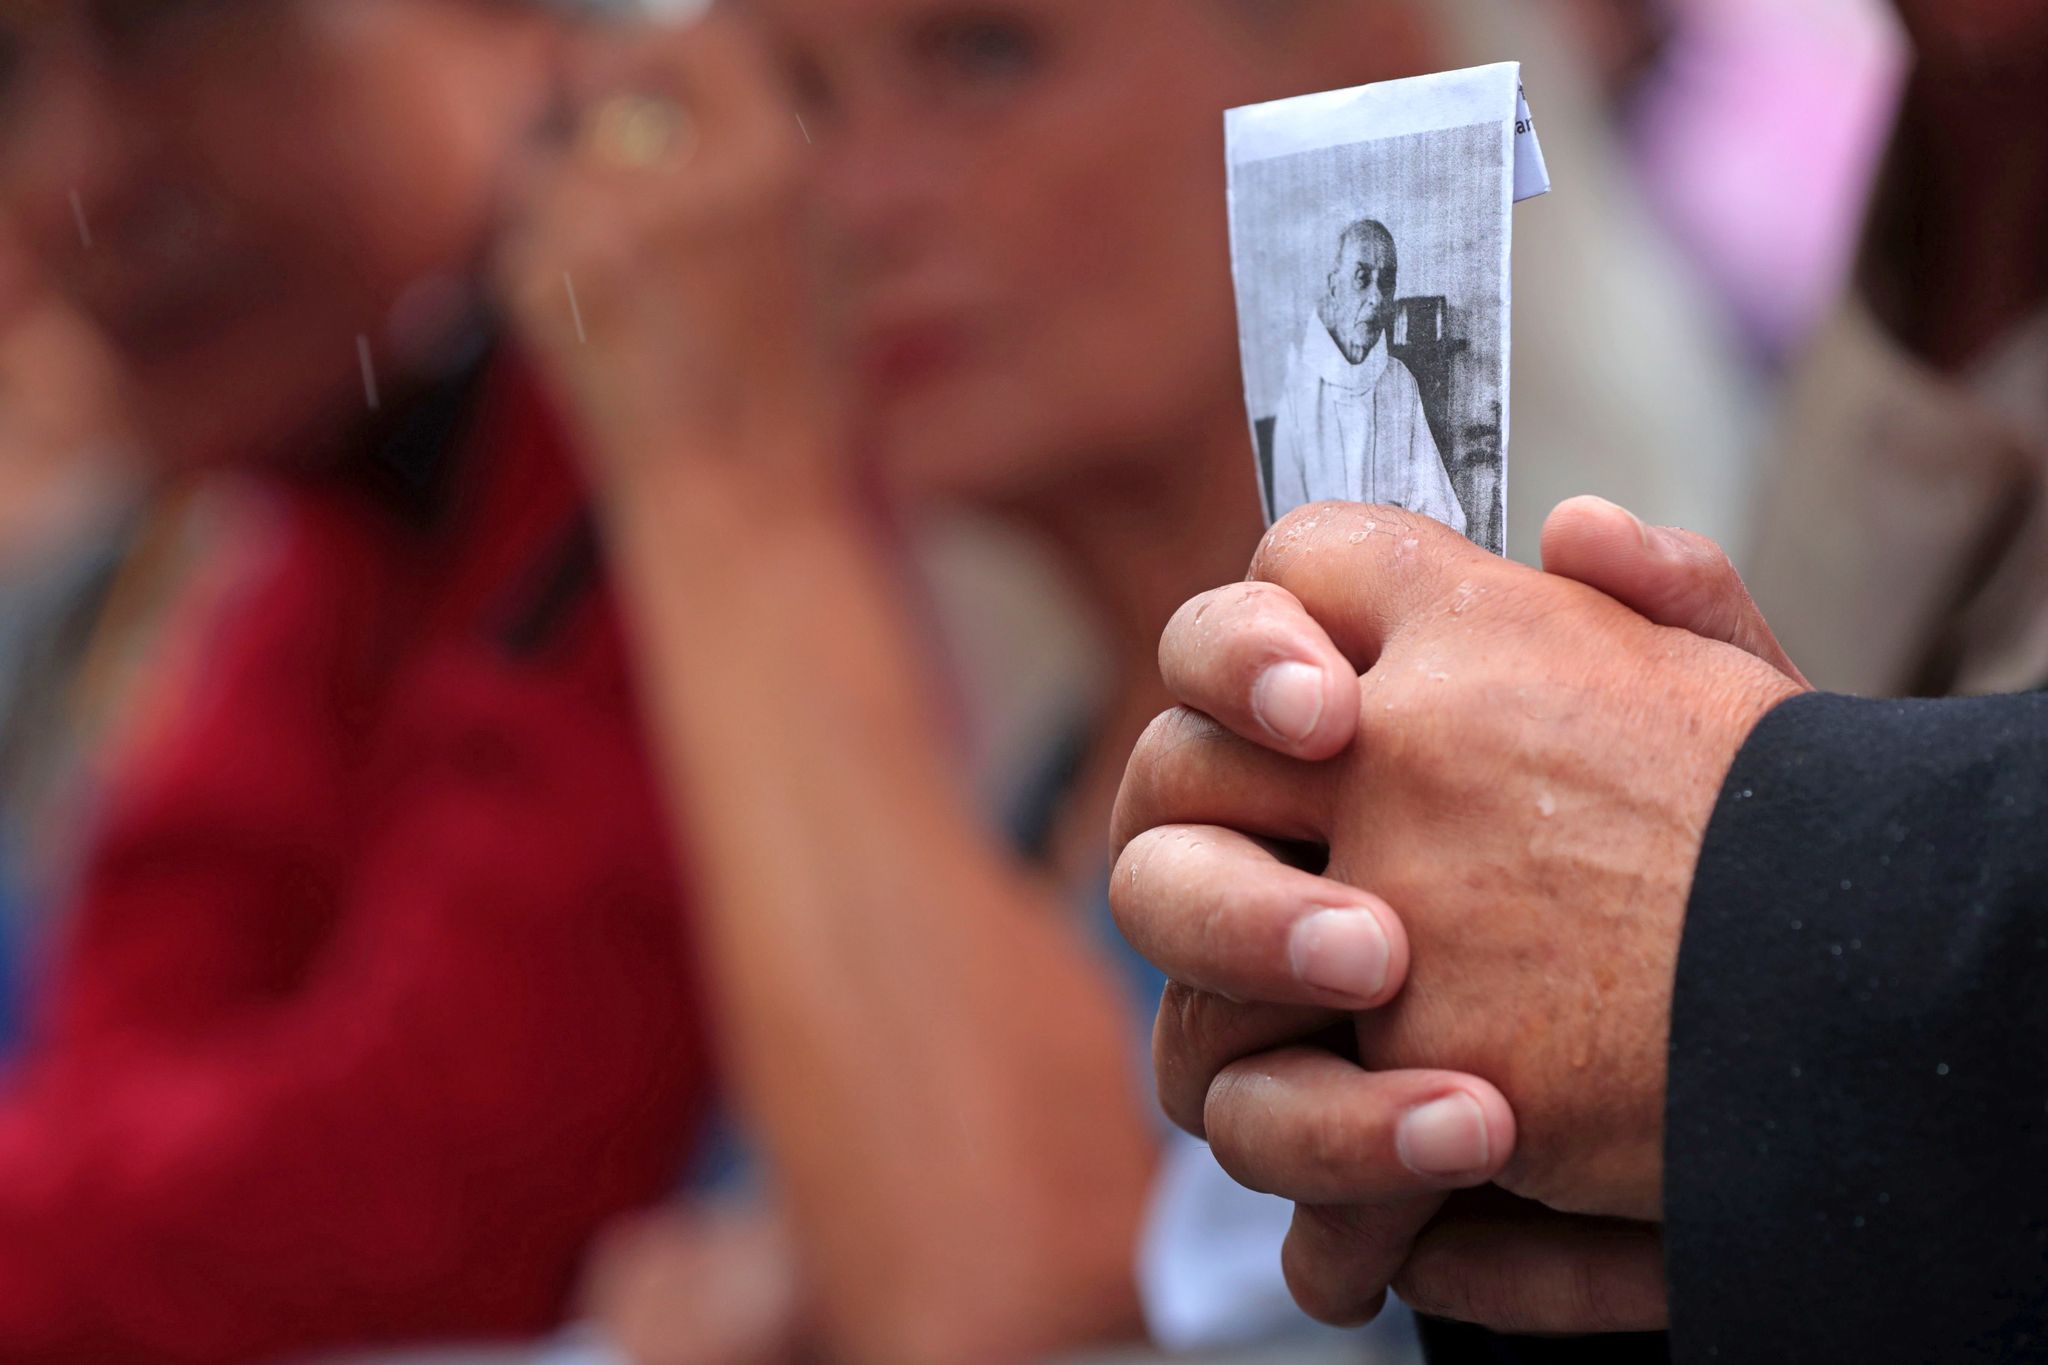 A man holds a picture of the priest Jacques Hamel outside Rouen's cathedral on August 2, 2016 during the funeral of the priest who was killed in a church in Saint-Etienne-du-Rouvray on July 26 during a hostage-taking claimed by Islamic State group.   Two jihadists, both 19, slit Hamel's throat while he was celebrating mass in an attack that shocked the country as well as the Catholic Church. The church attack came less than two weeks after another attacker ploughed a 19-tonne truck into a massive crowd celebrating Bastille Day in the Riviera city of Nice, killing 84 people and wounding more than 300 others